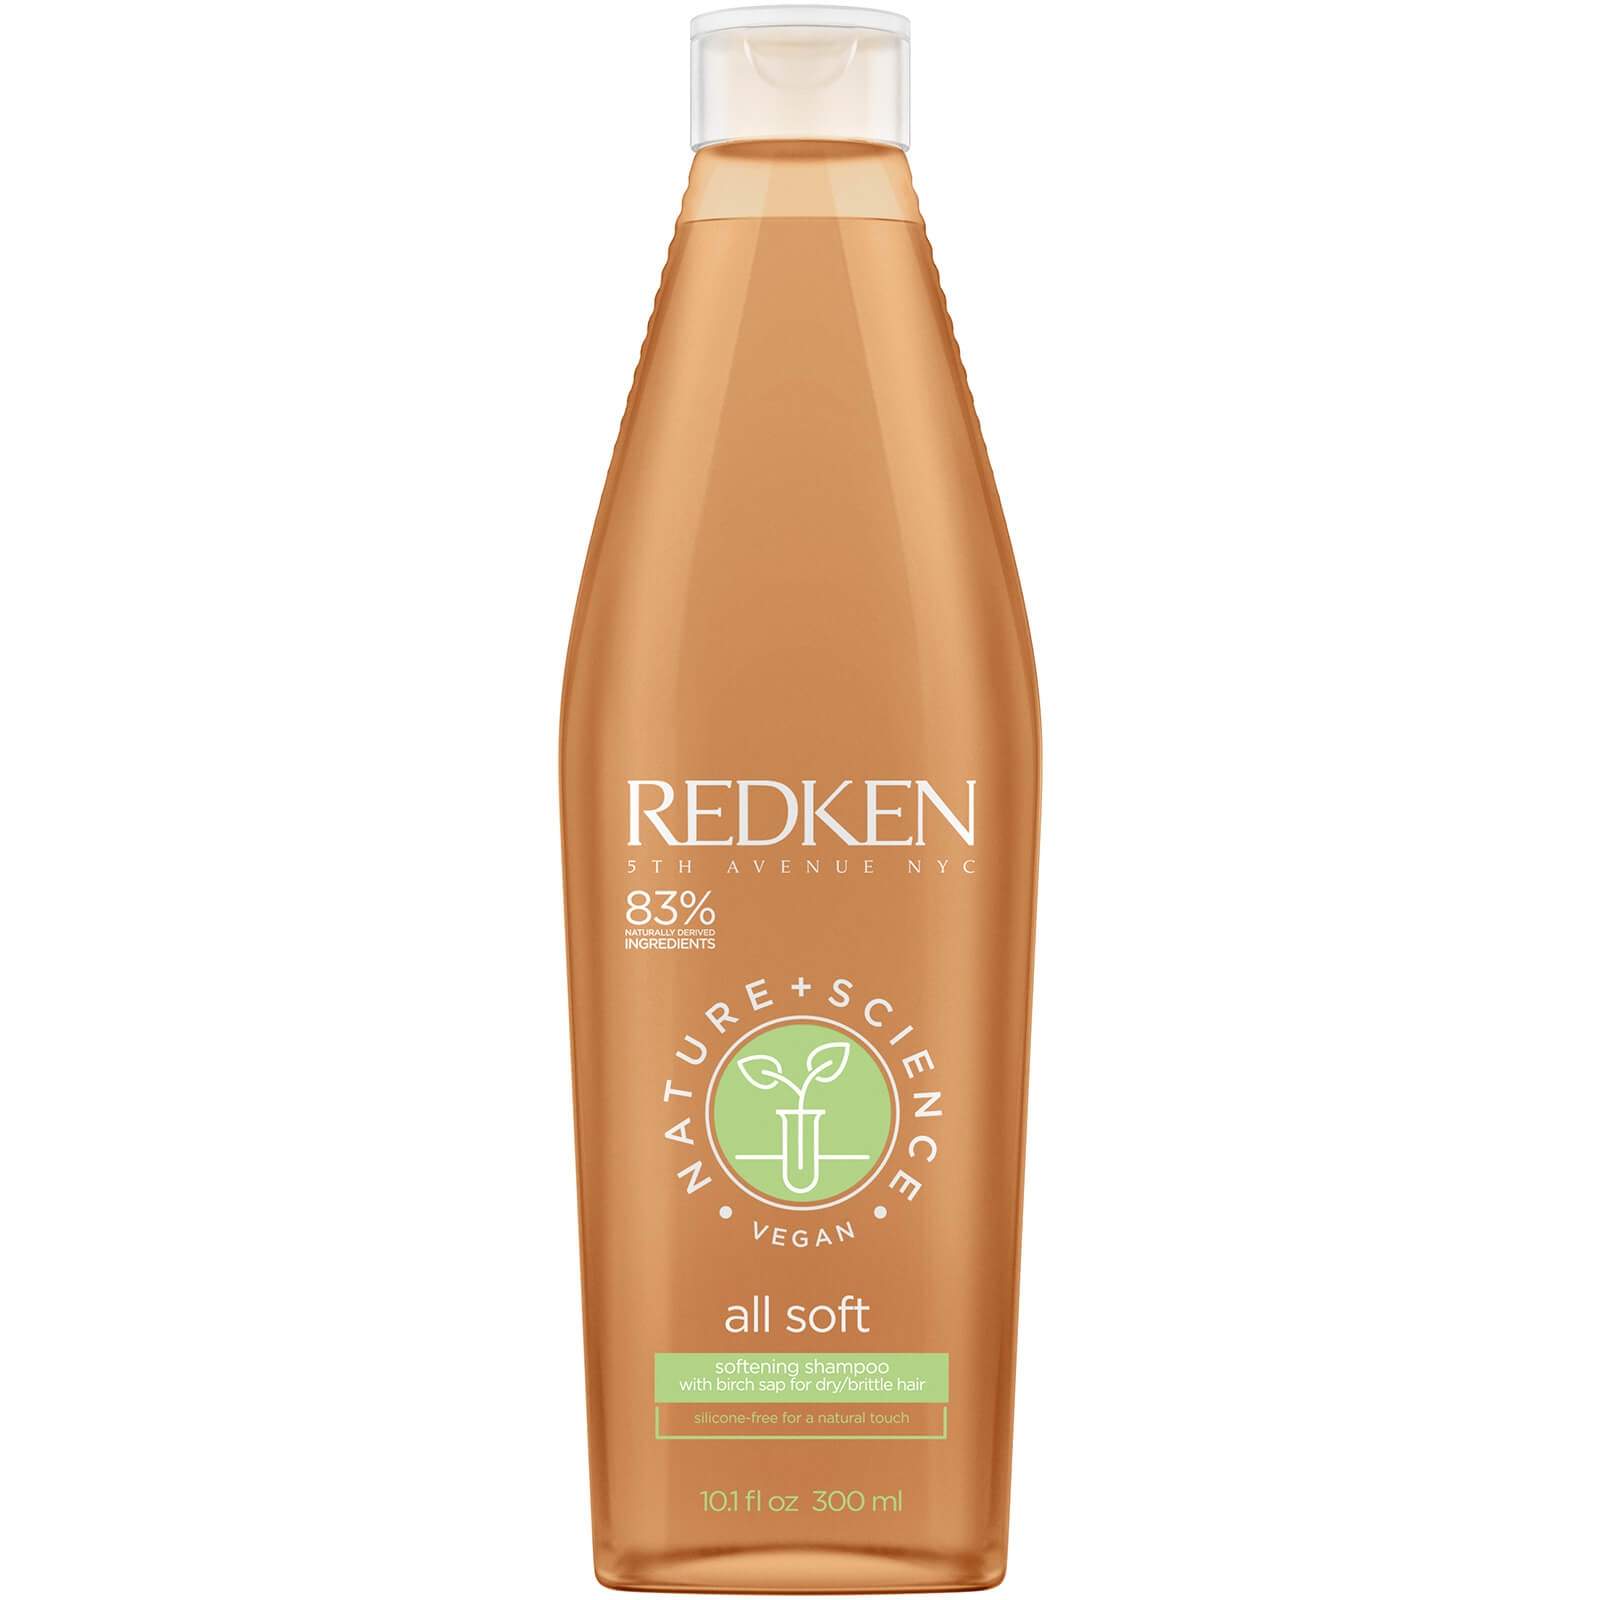 REDKEN Шампунь Nature Science All Soft  Нэйчерал Сайнс Олл Софт, 300 мл